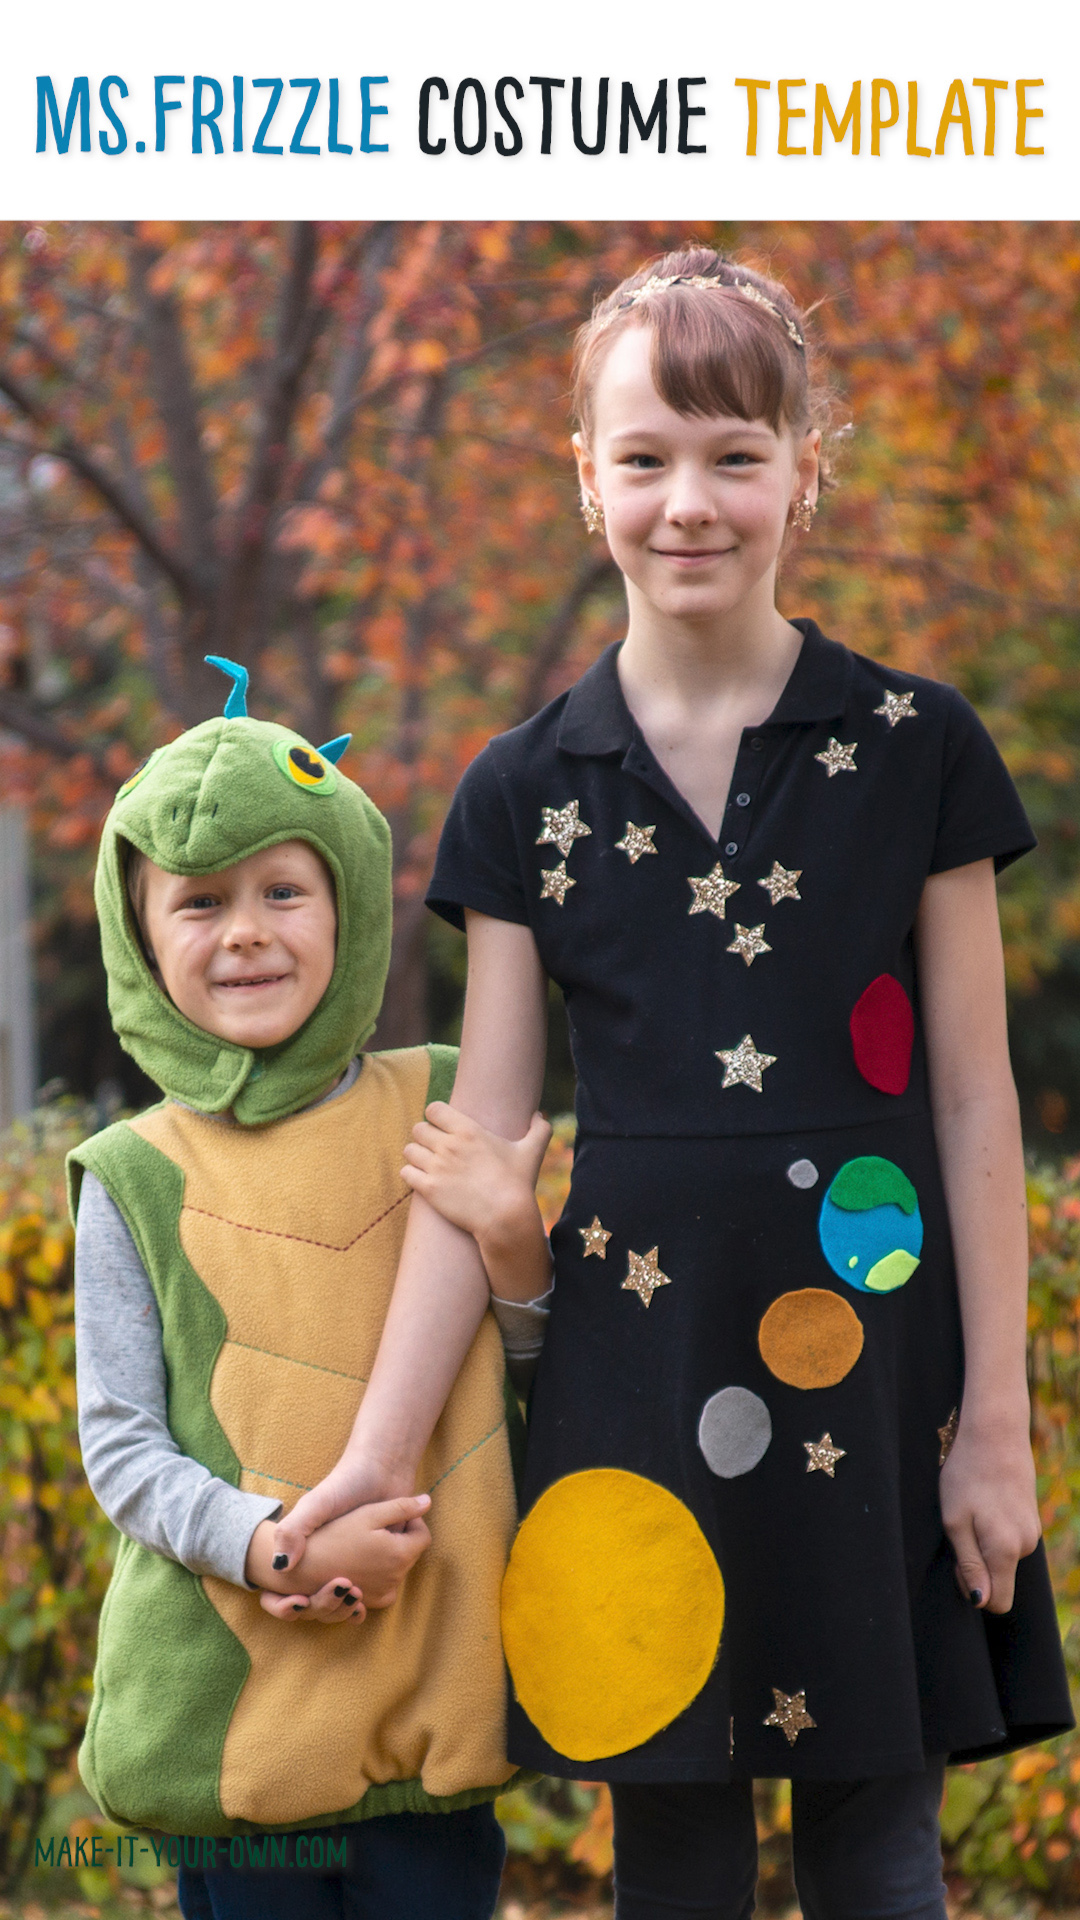 Ms. Frizzle Halloween or Book Character Day Space Costume with Printable Templates #halloweencostume #magicschoolbus #bookcharactercostume #bookday #bookweek #bookcharacter #teachercostume #kidscostume #spacecostume #costumetemplate #costumepattern #msfrizzle